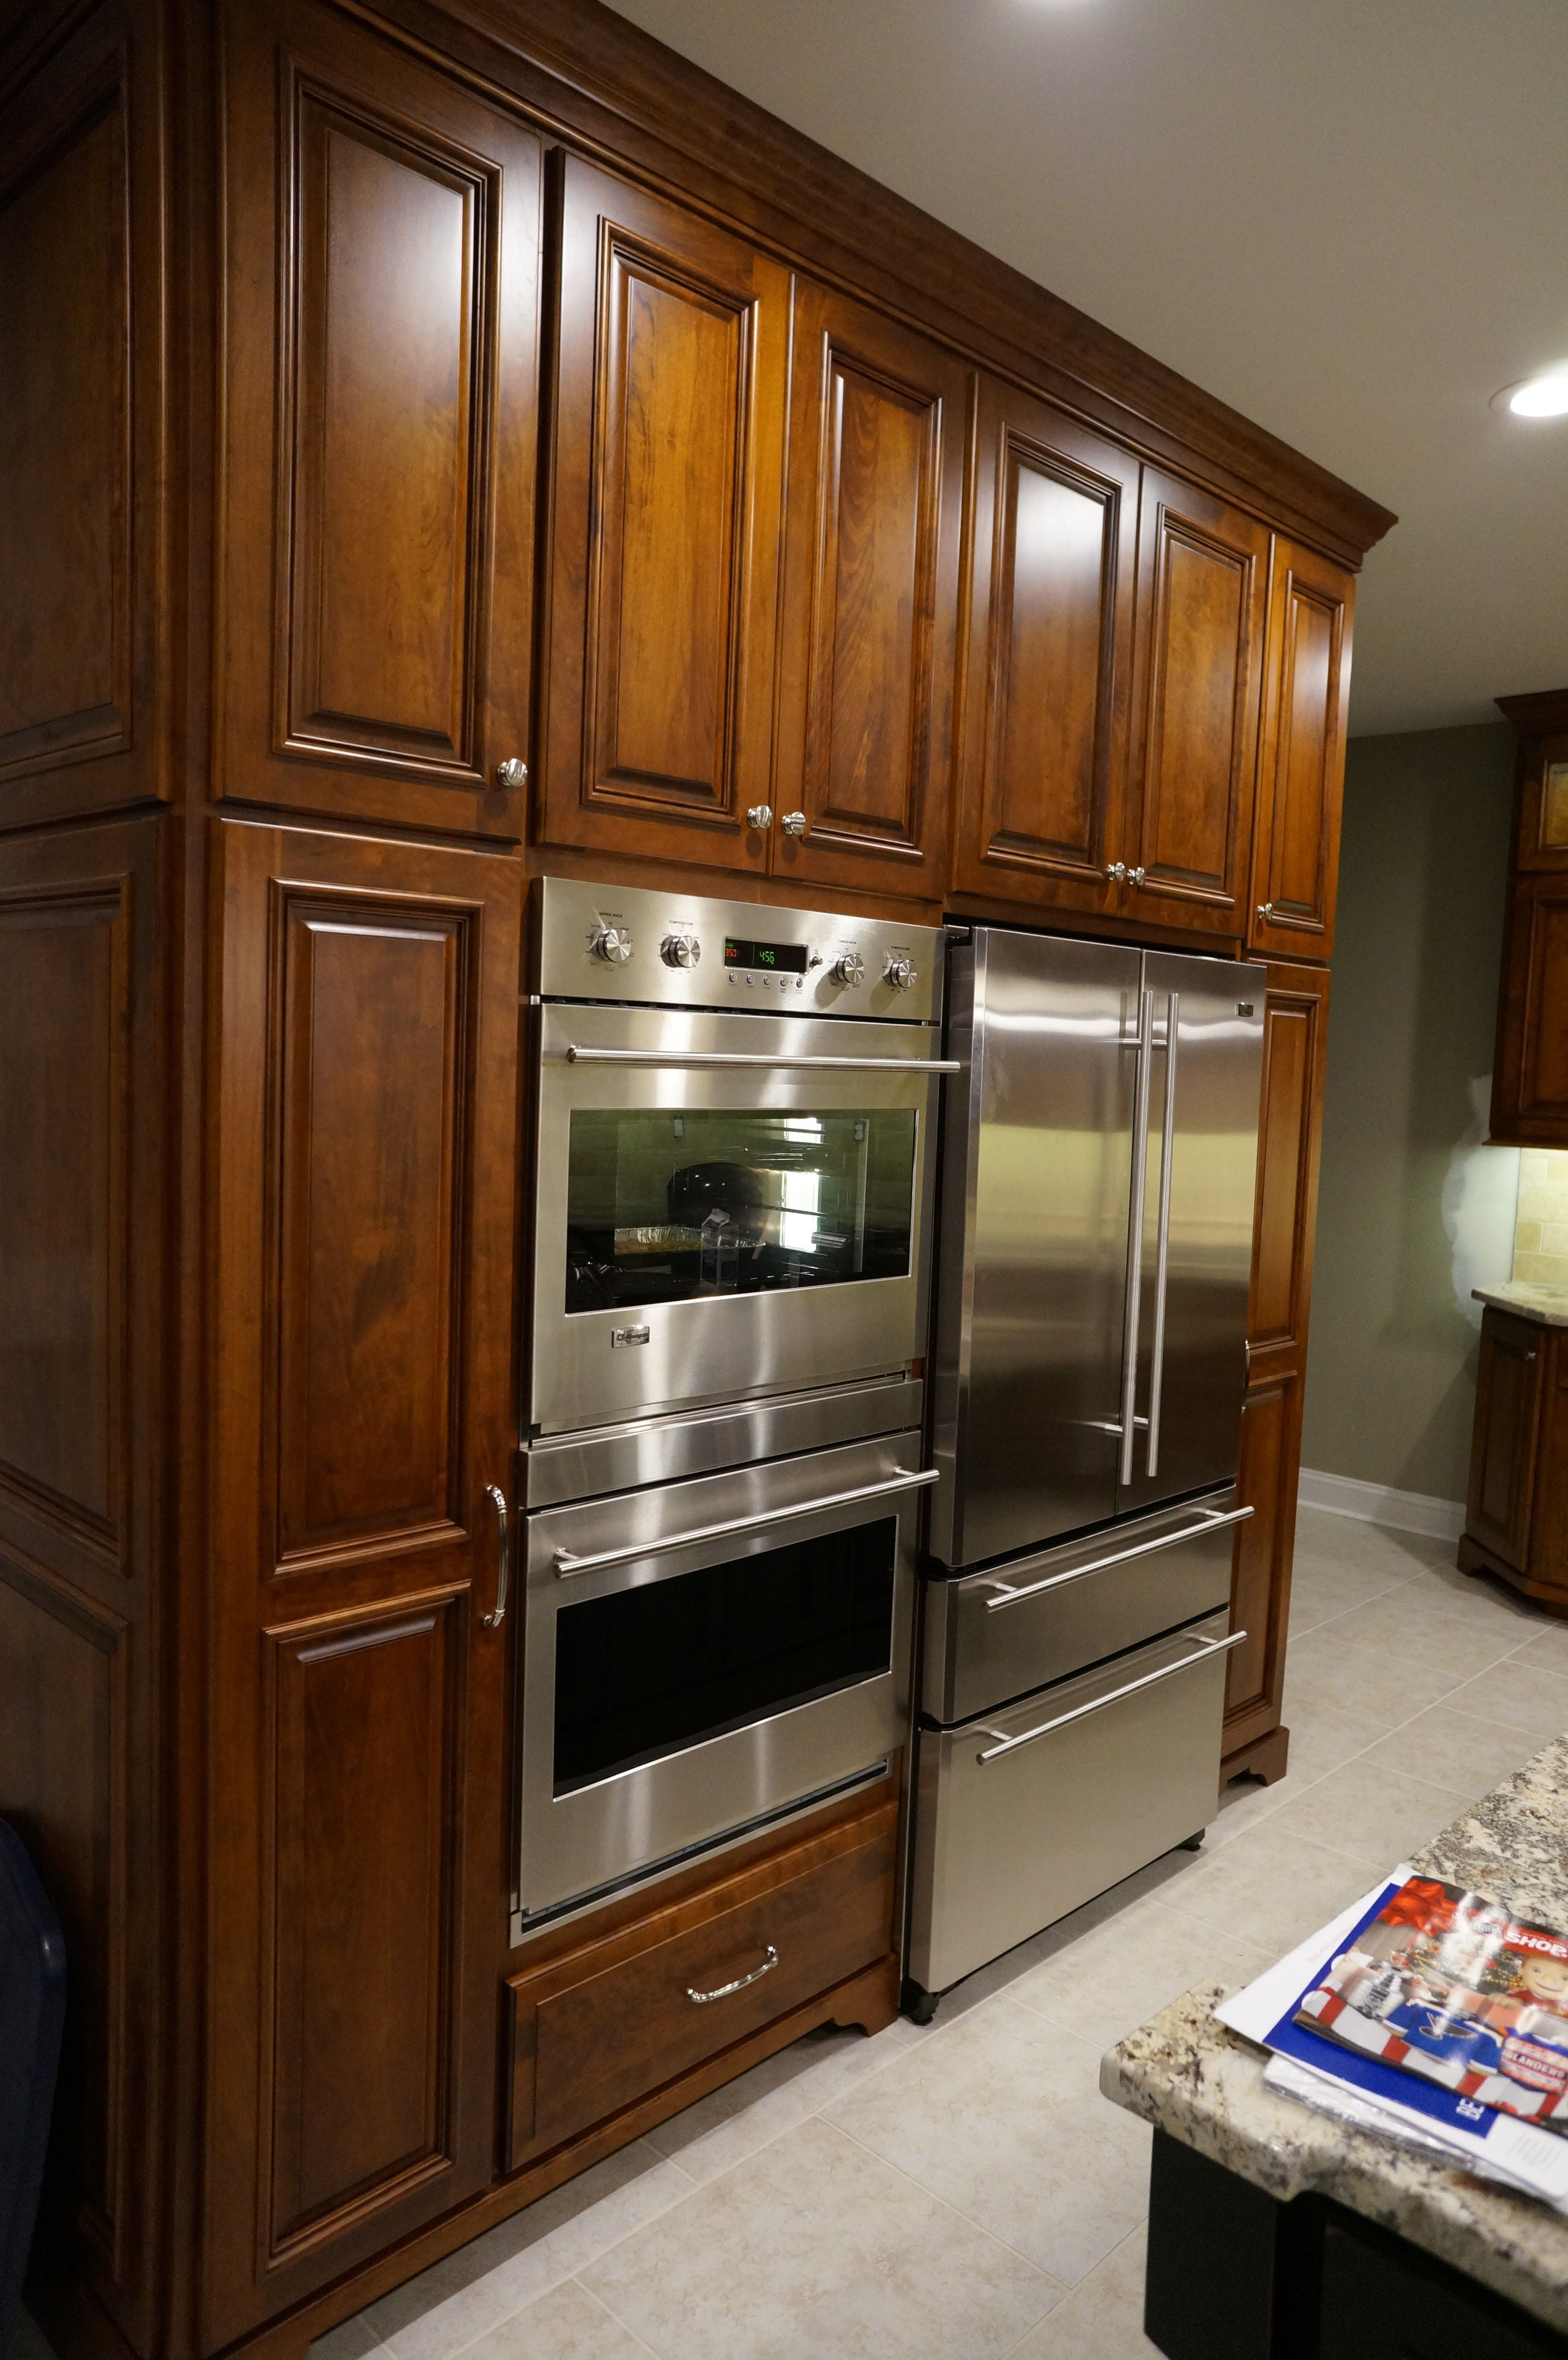 Custom Kitchen Cabinets With Double Oven And Refrigerator Surround